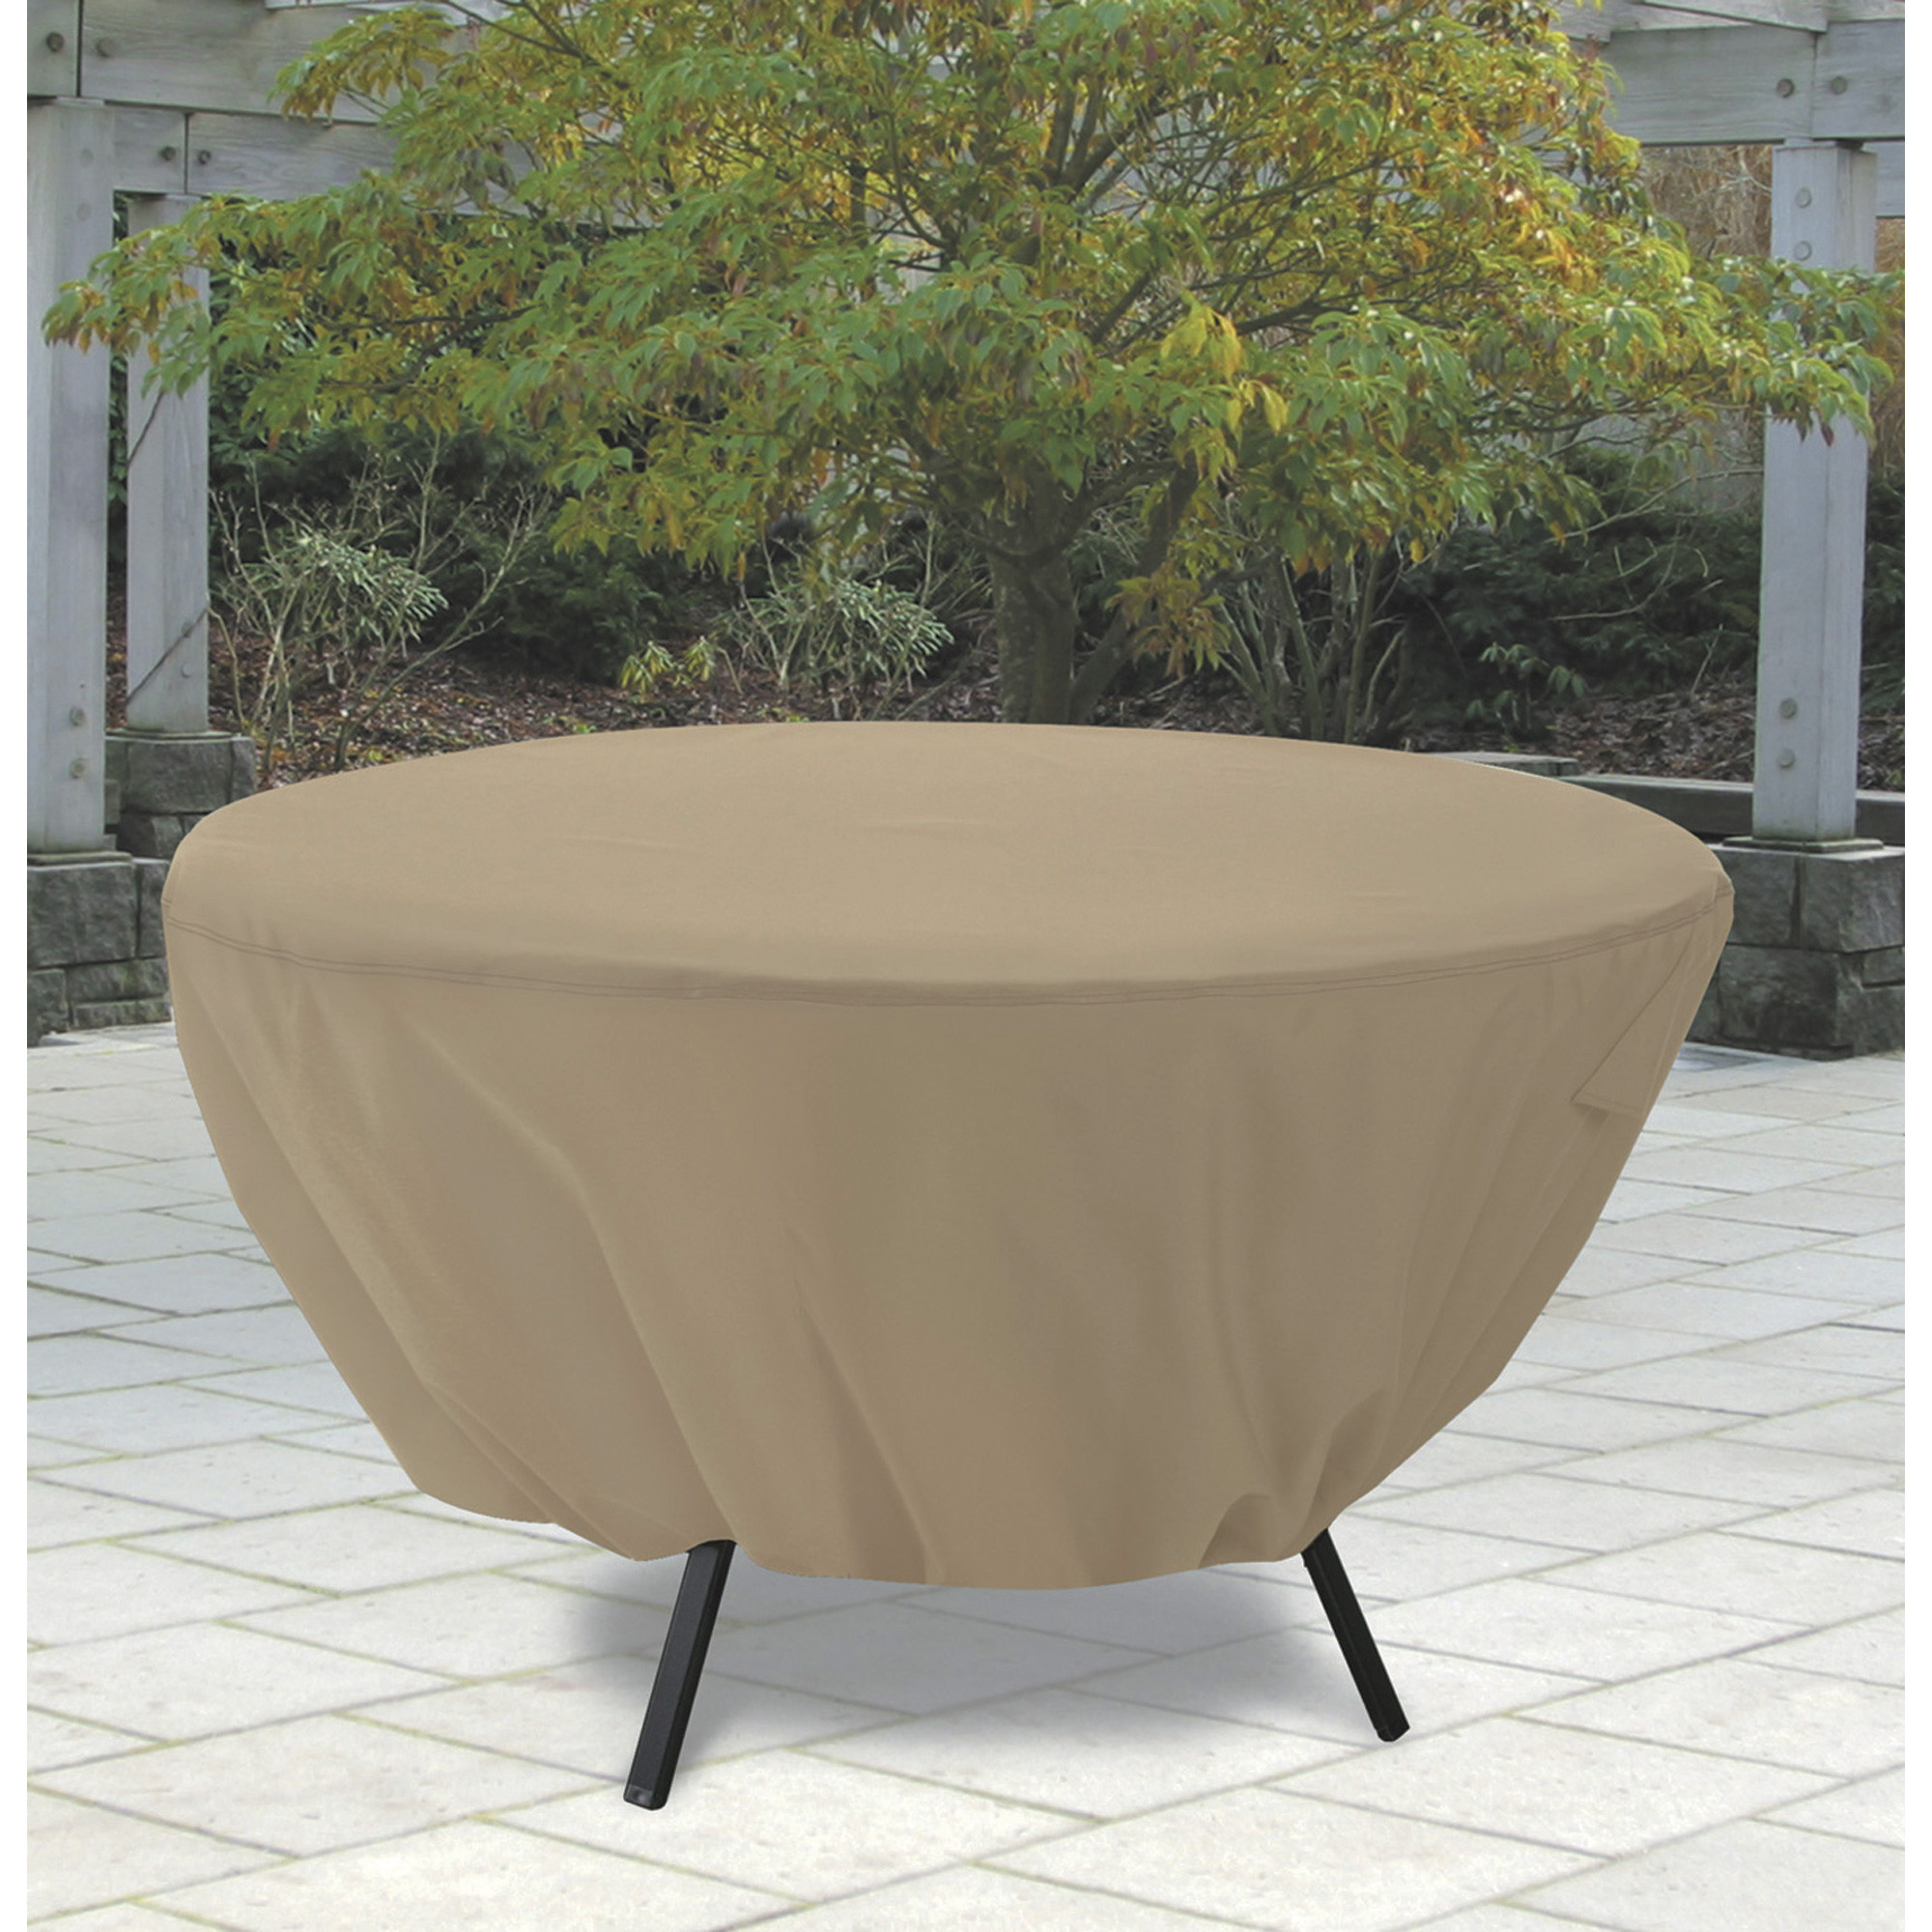 Best ideas about Patio Table Cover . Save or Pin Round Patio Table Cover — Fits Up to 50in Dia Now.